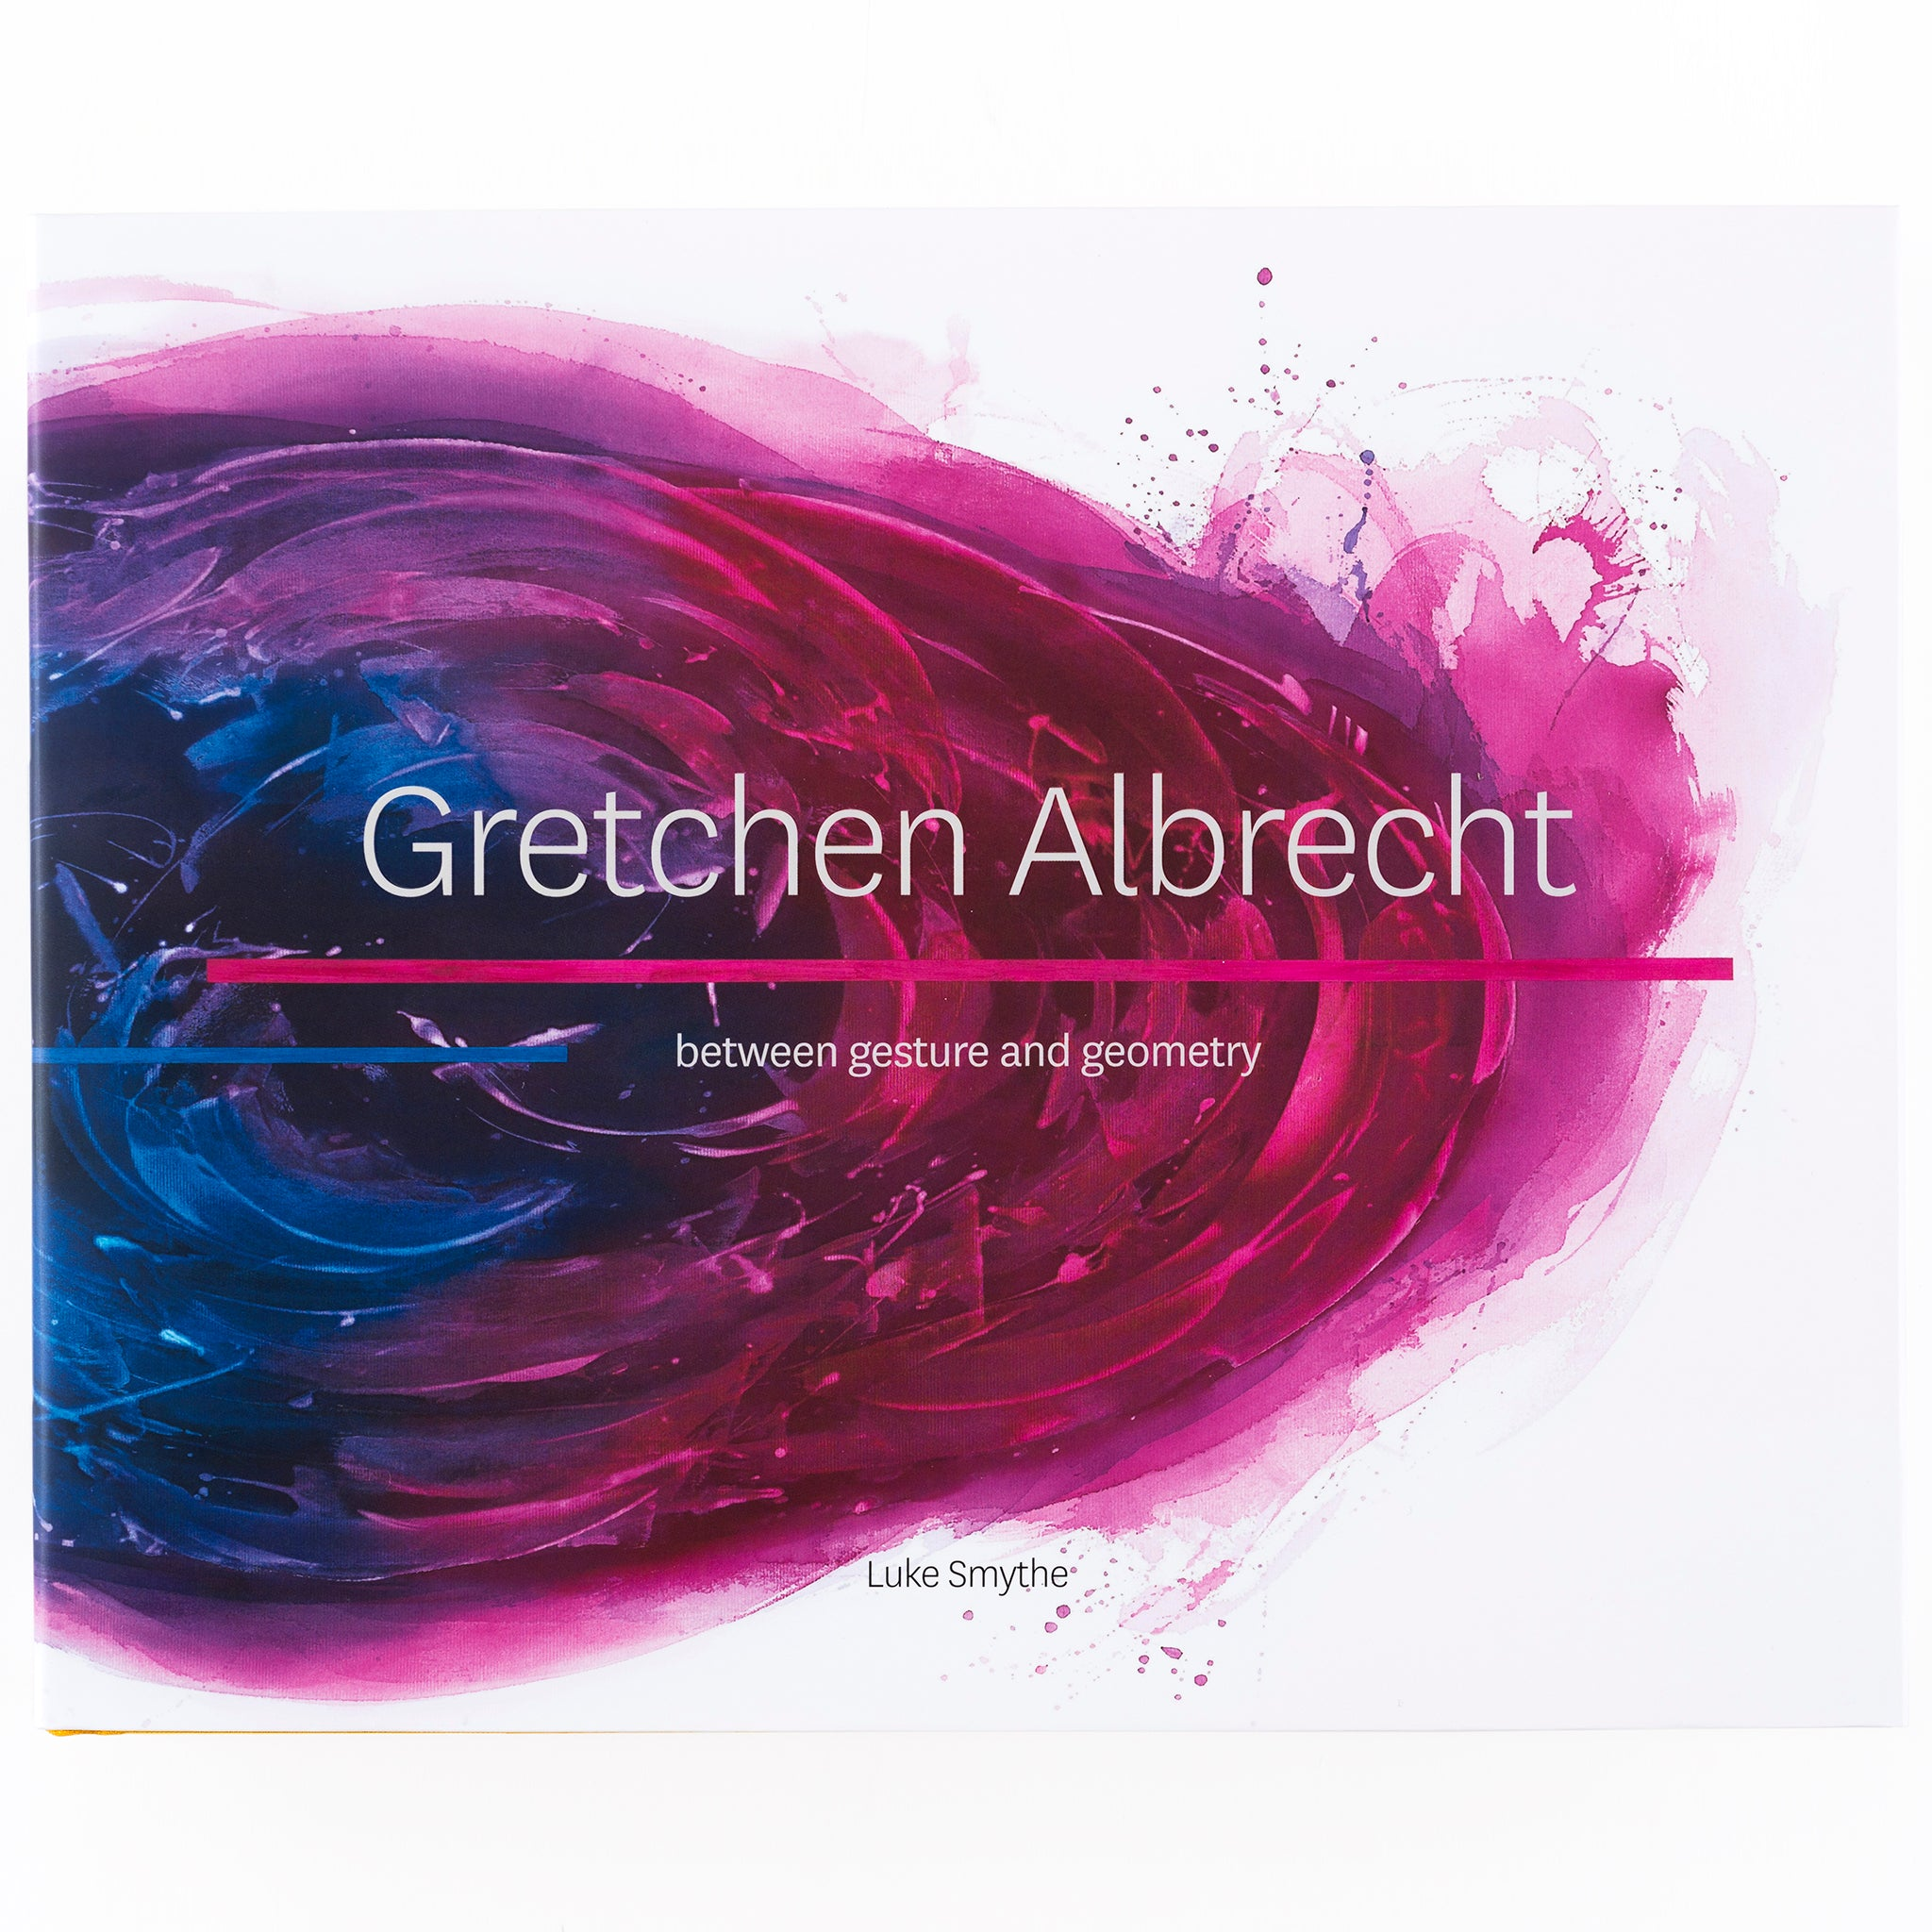 Gretchen Albrecht: Between Gesture and Geometry Image